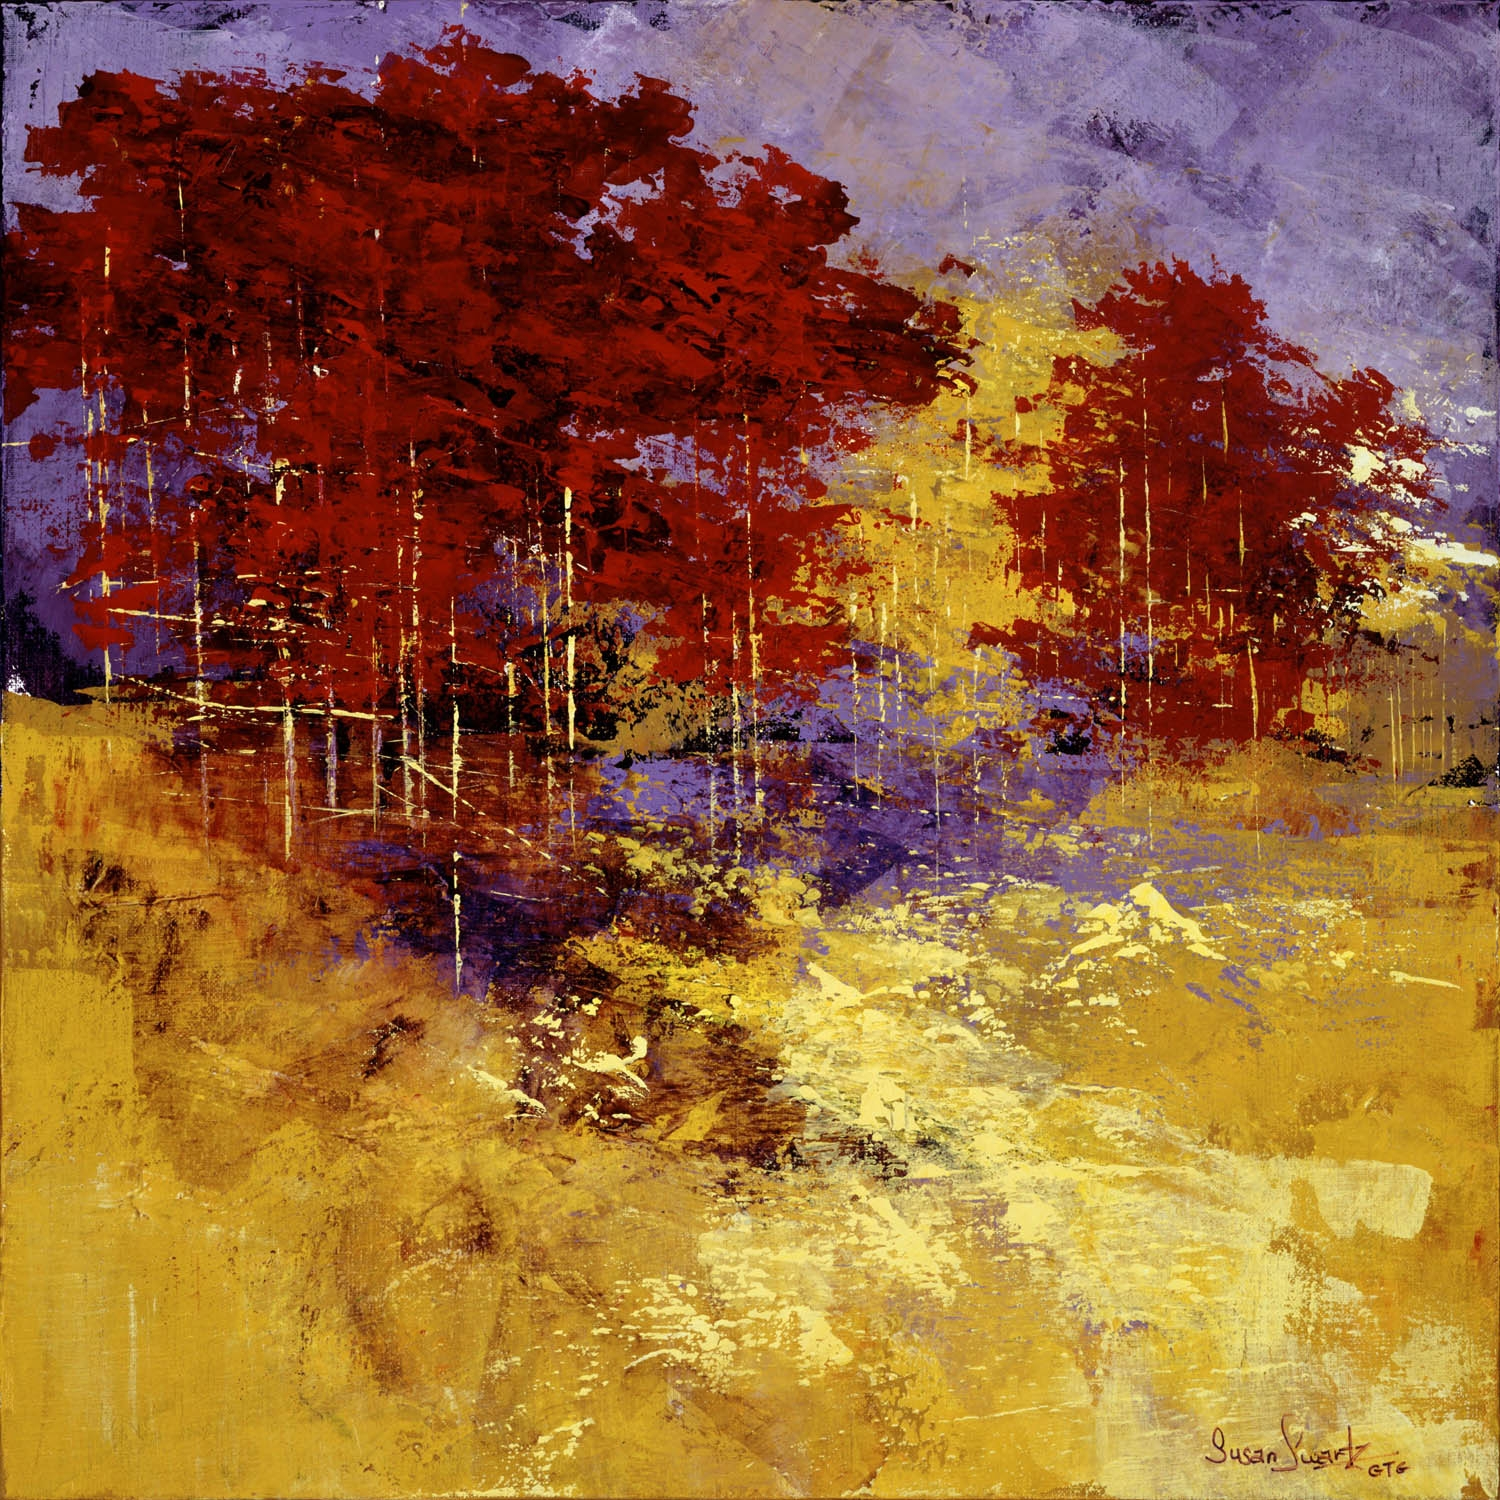 Image of Susan Swartz's painting Autumn Song